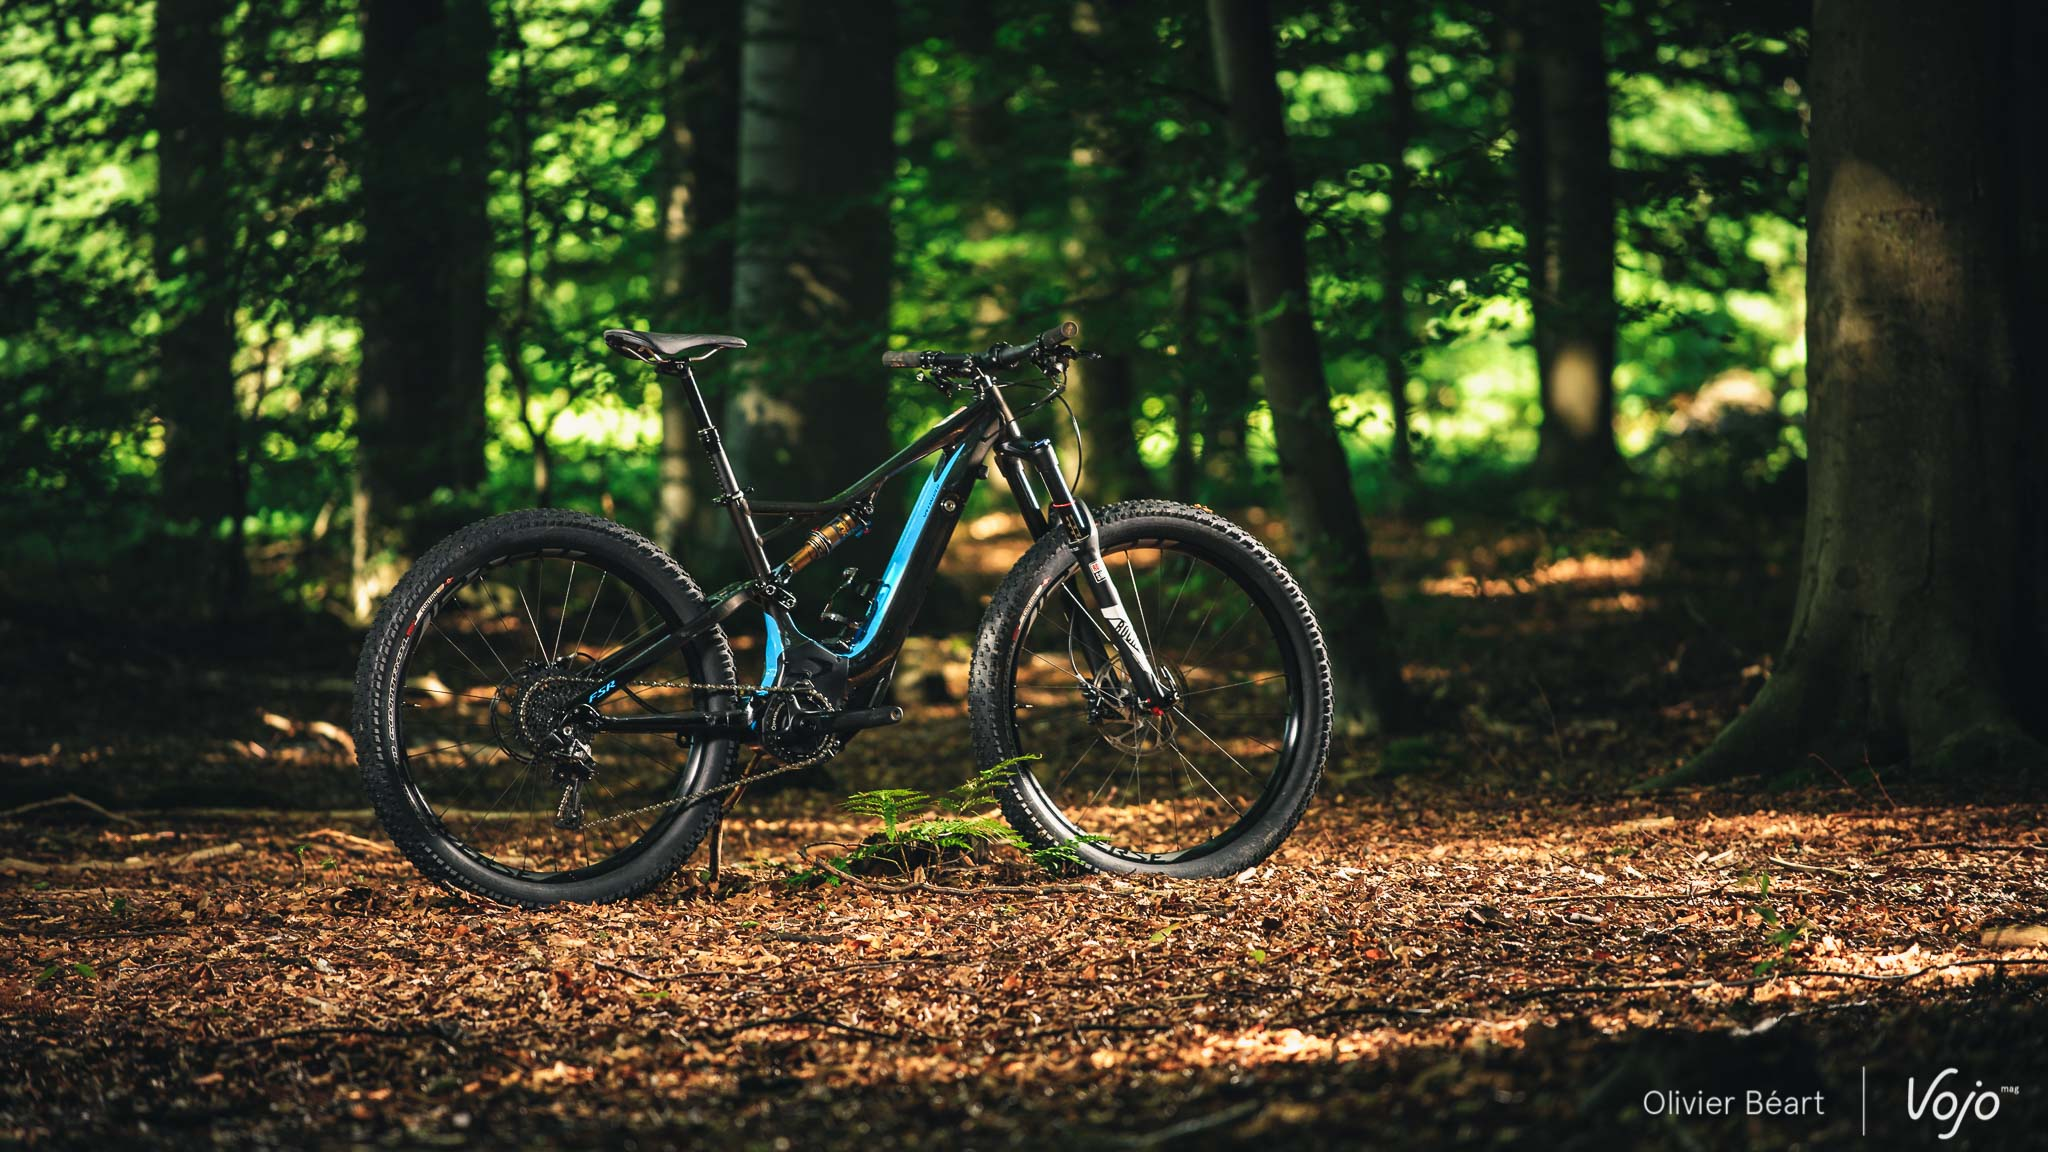 Specialized_Turbo_Levo_FSR_Copyright_Beart_VojoMag-8